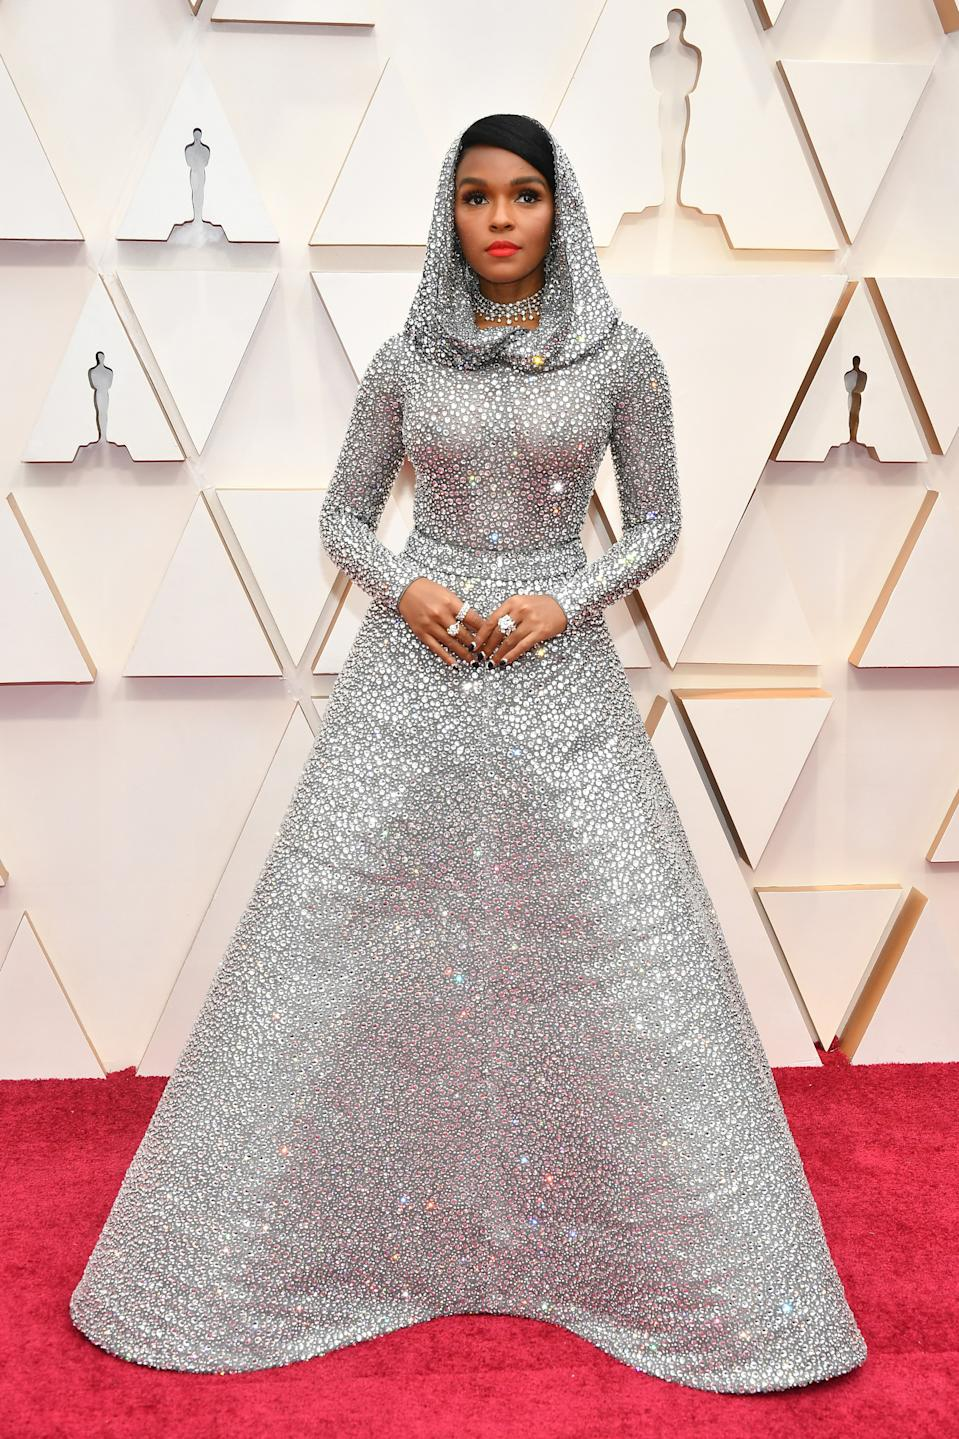 The actress and singer arrived on the red carpet in a dazzling silver gown by Ralph Lauren.